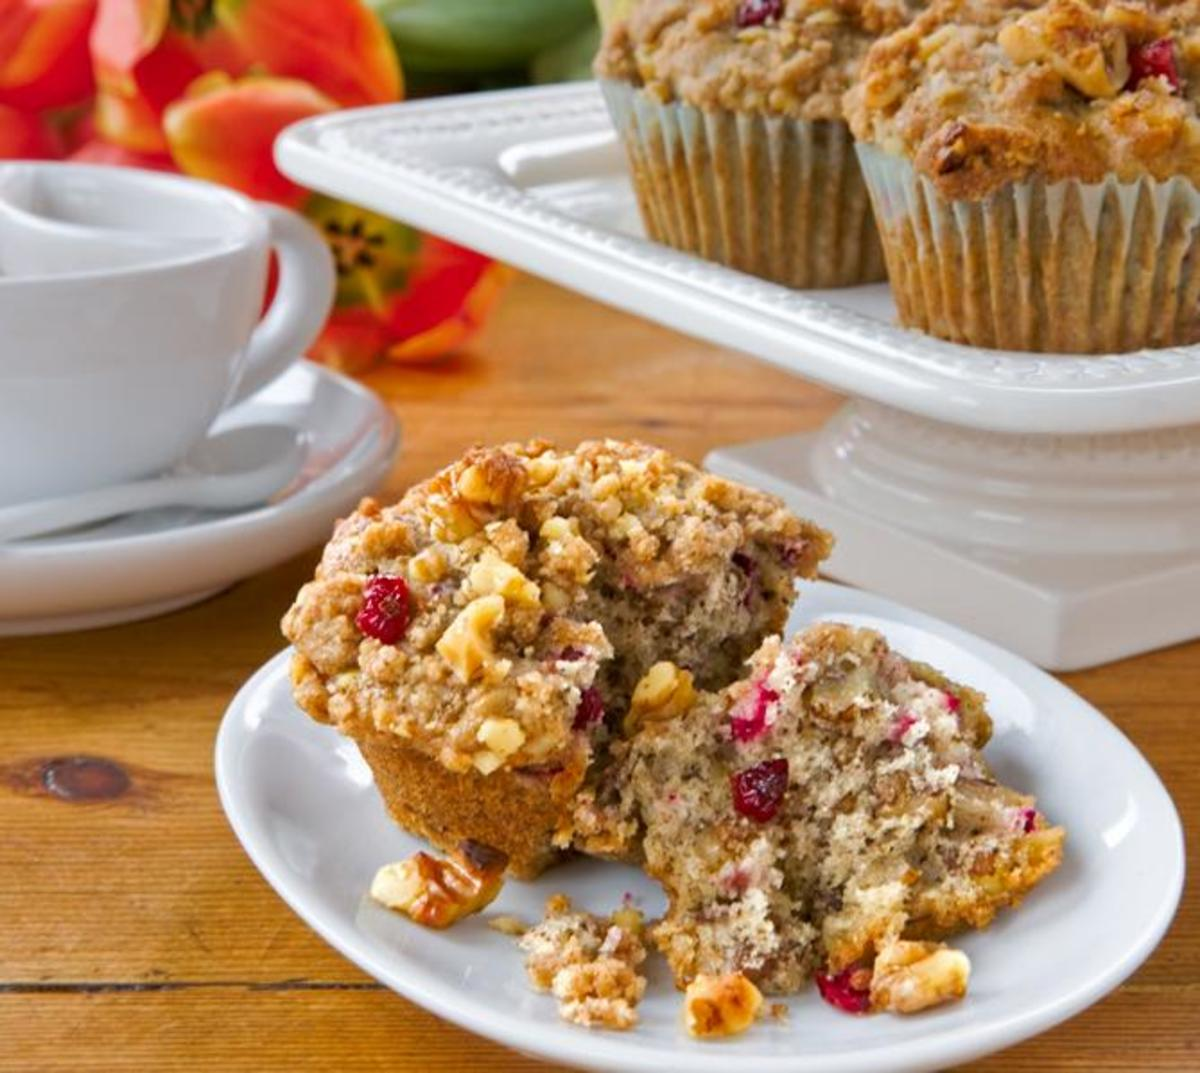 Nutty Cranberry Muffins with Streusel Topping